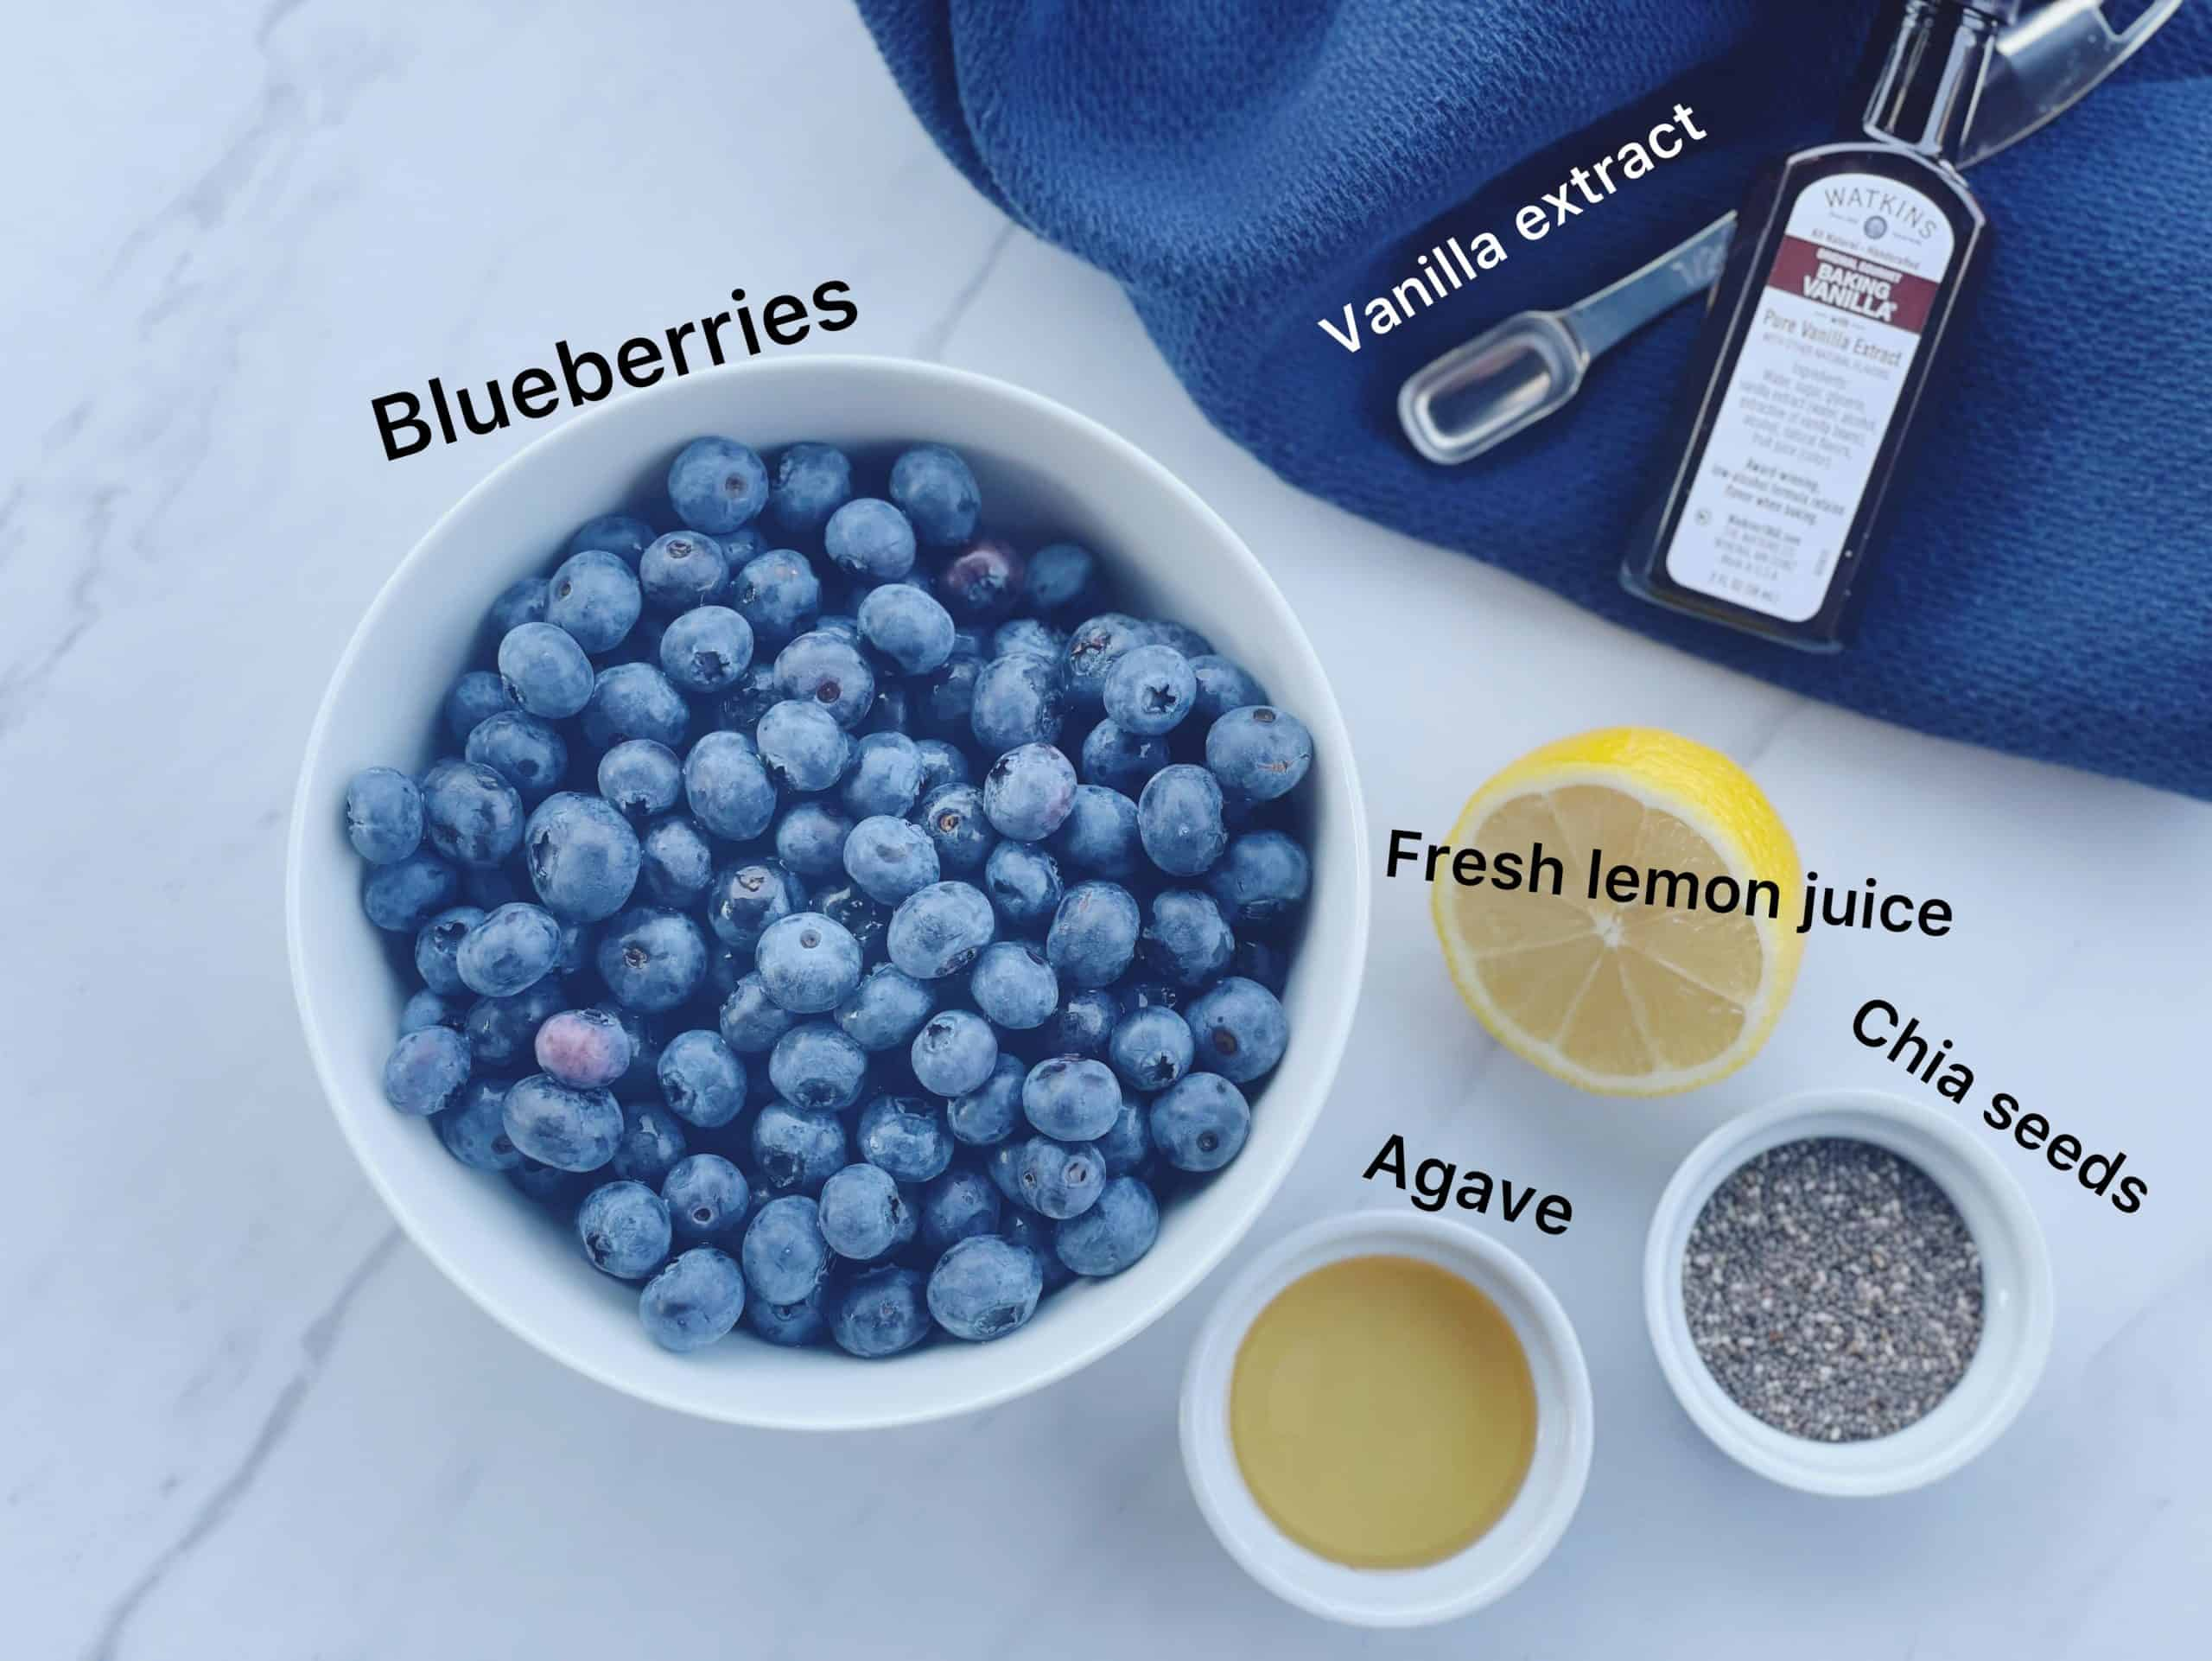 ingredients for blueberry chia jam, including blueberries, lemon juice, agave, vanilla extract and chia seeds